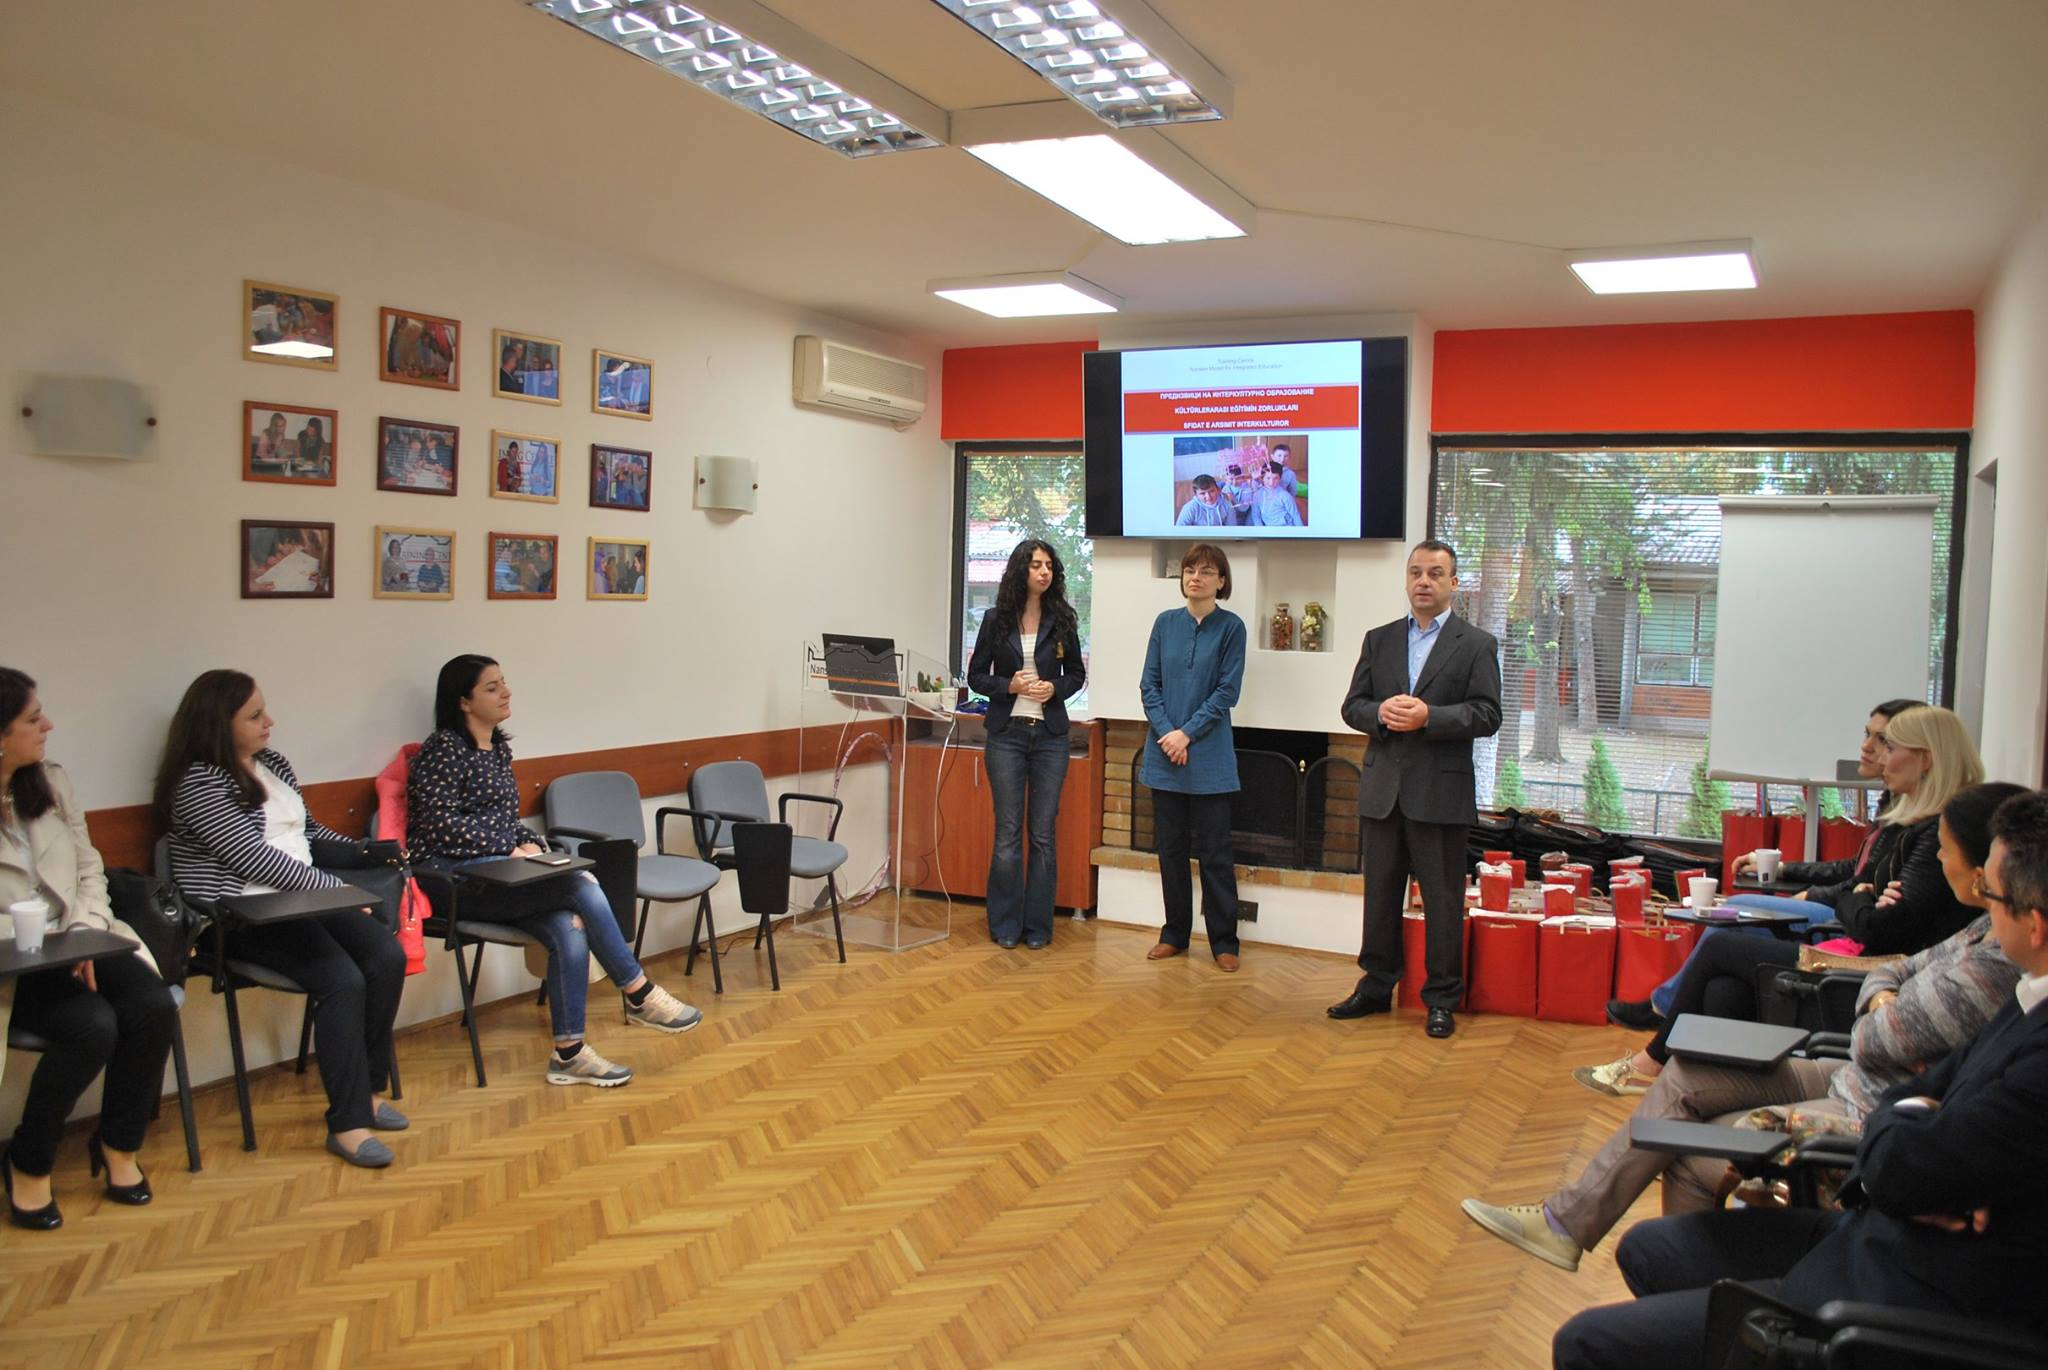 NDC Skopje Training Centre welcomes five new groups in the basic level training for integrated education